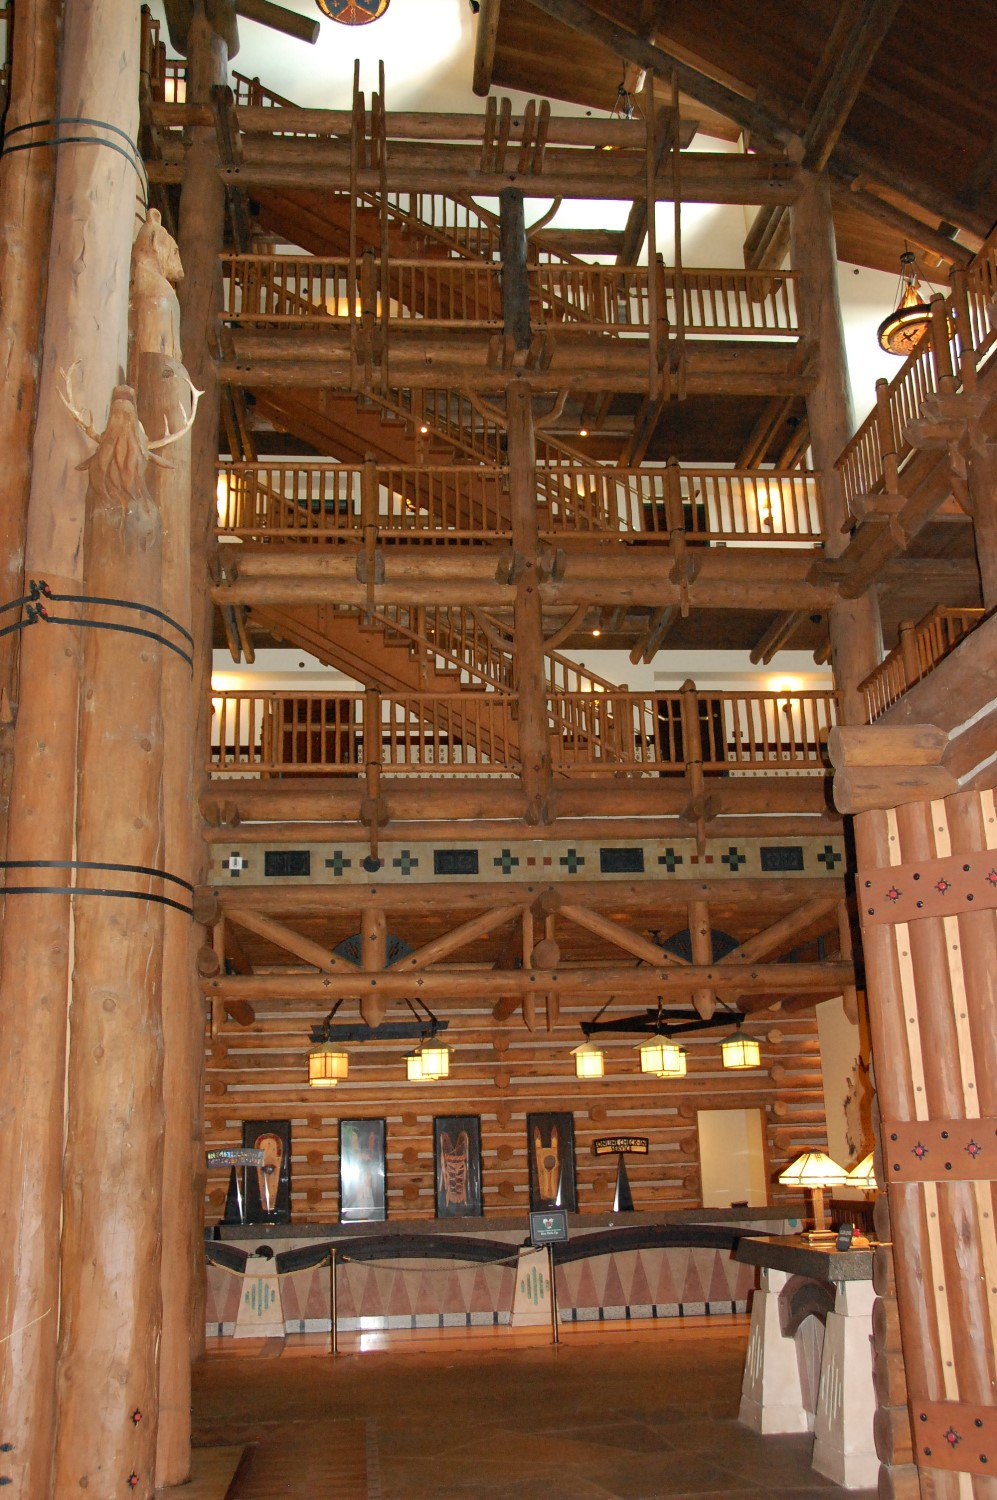 Grand Staircase at Disney's Wilderness Lodge Resort / Disney World - Florida.